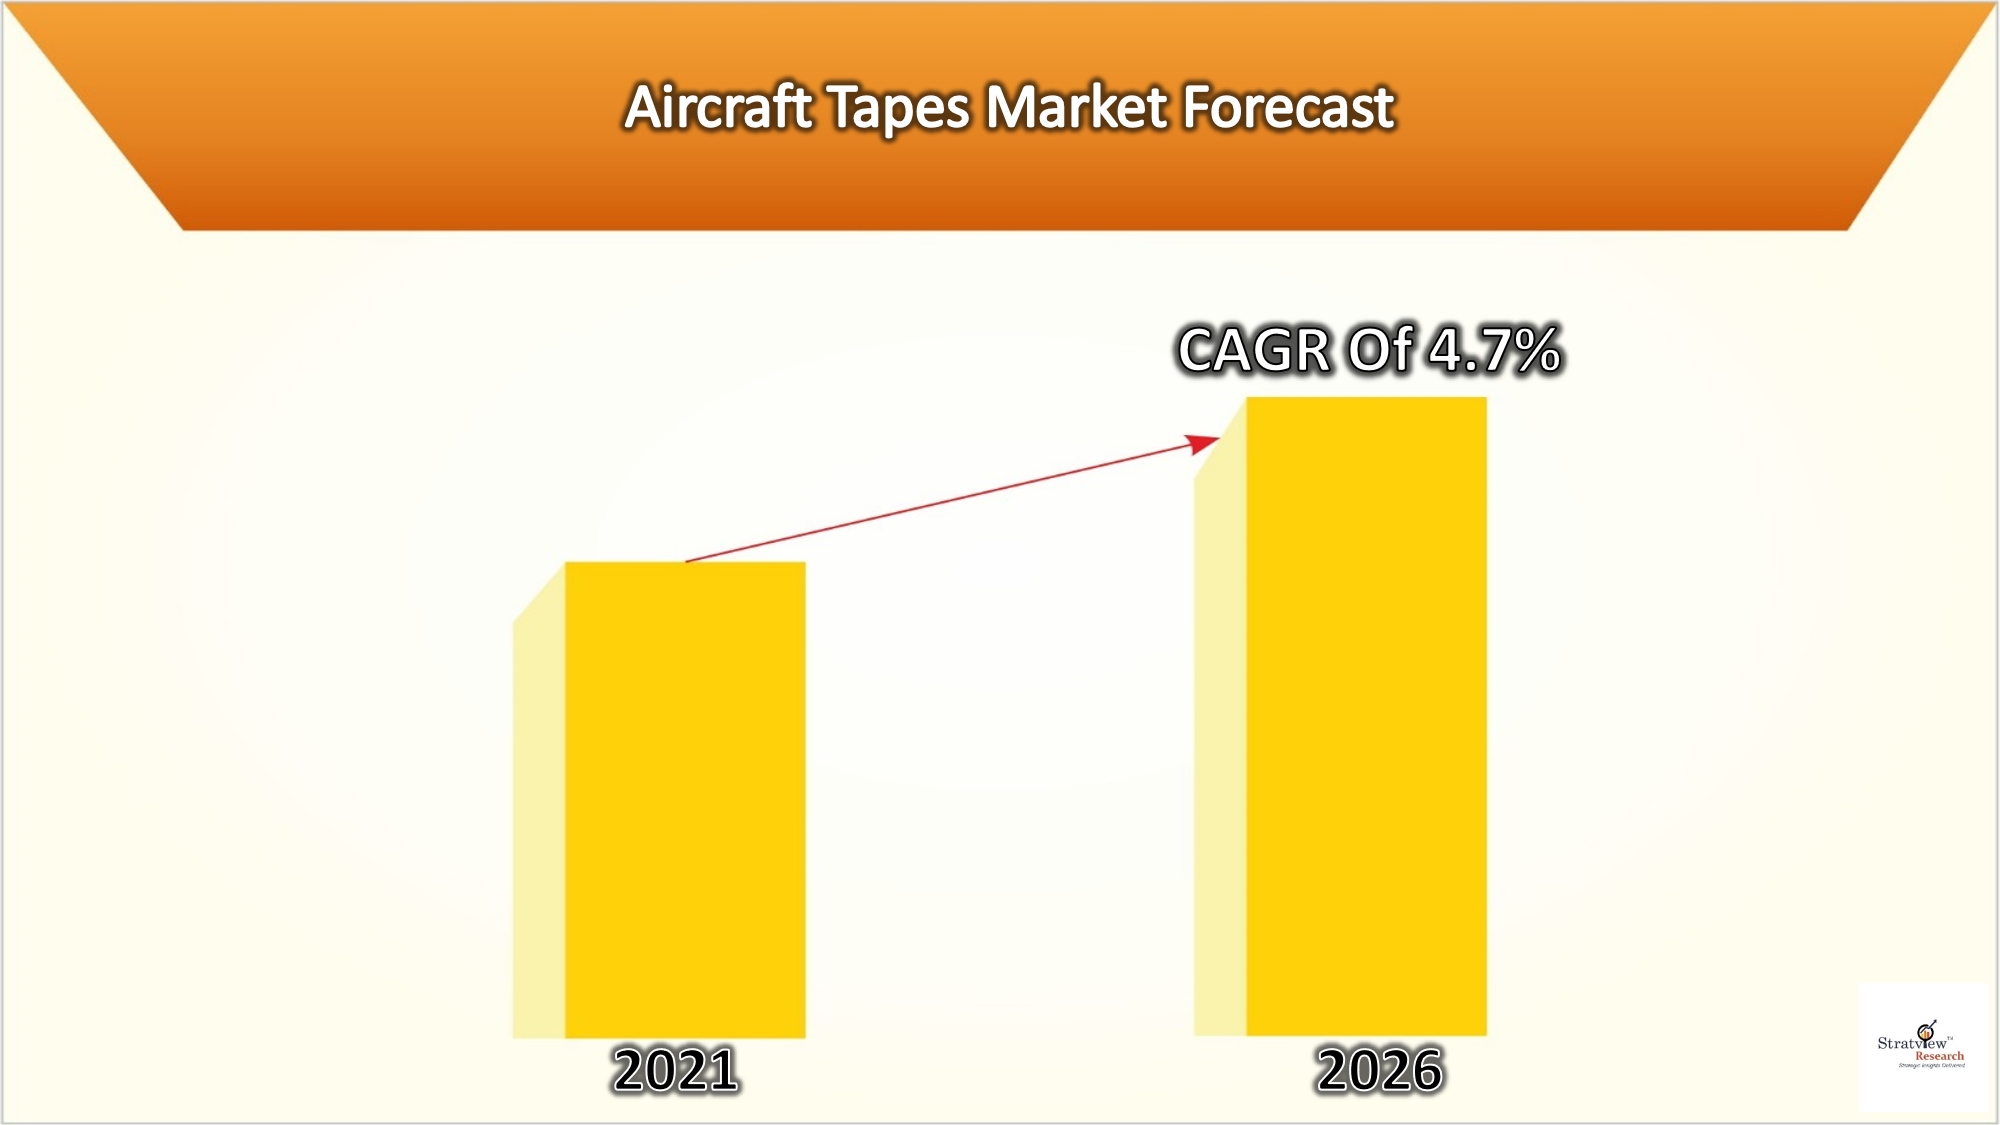 Aircraft Tapes Market